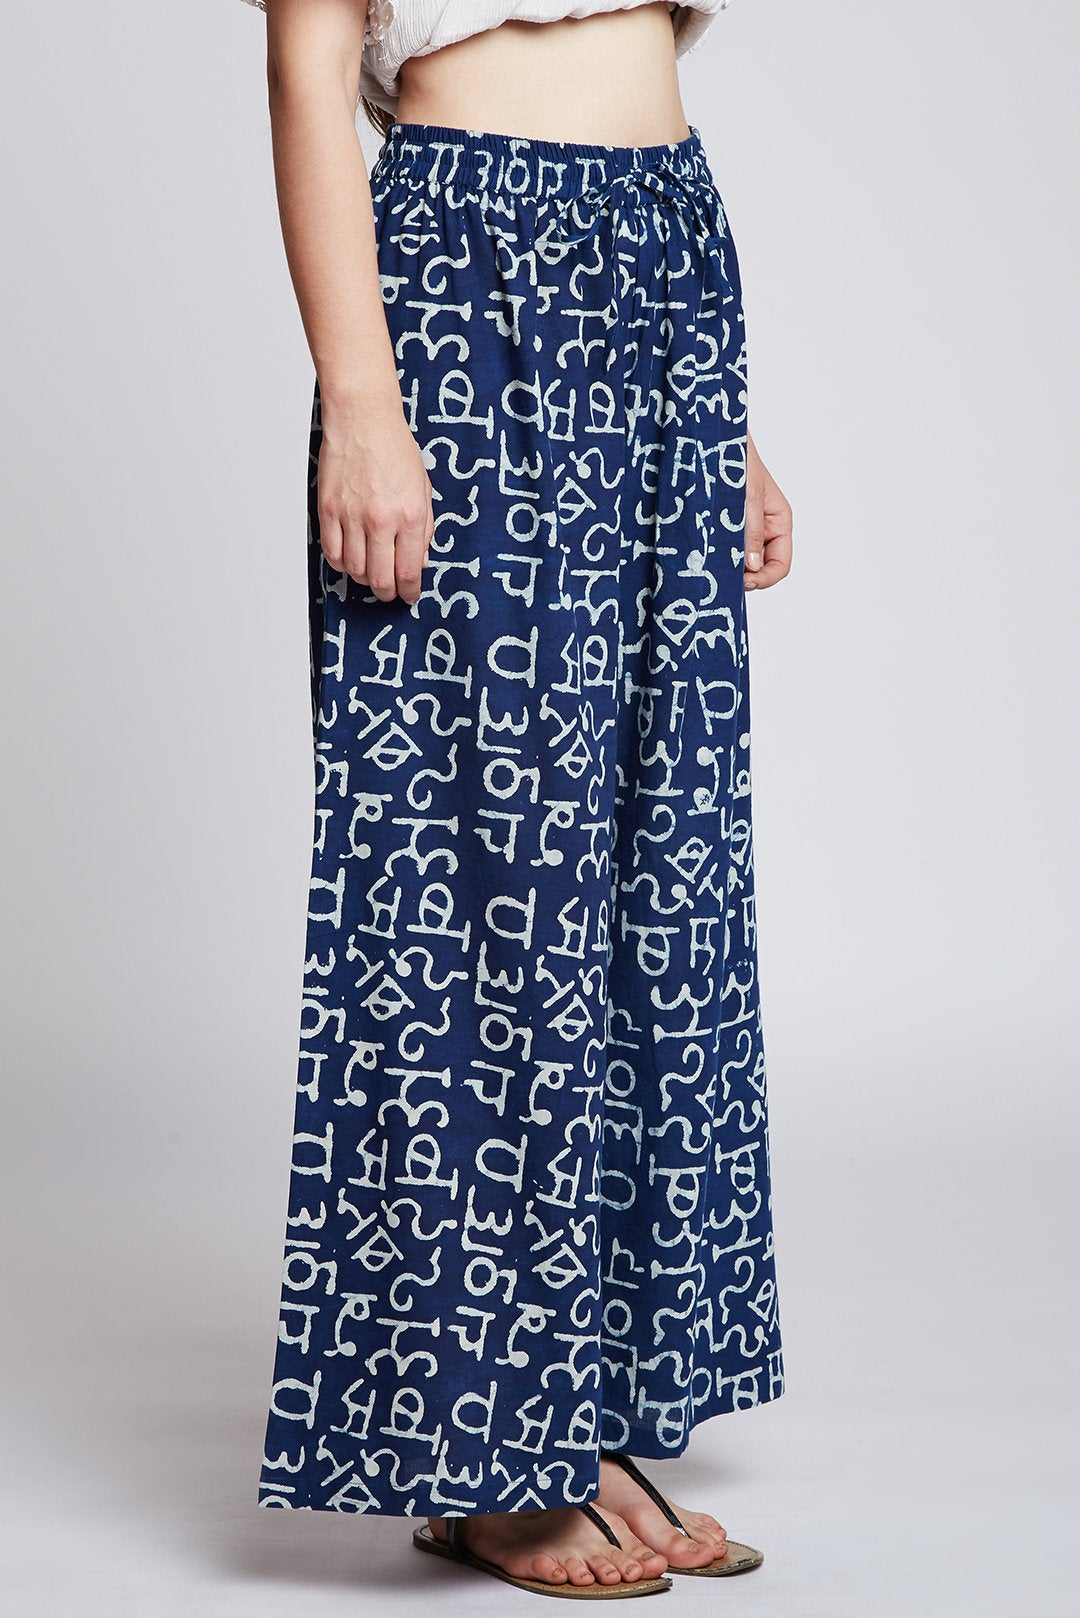 Indigo hand printed cotton palazzo pants / flared pants